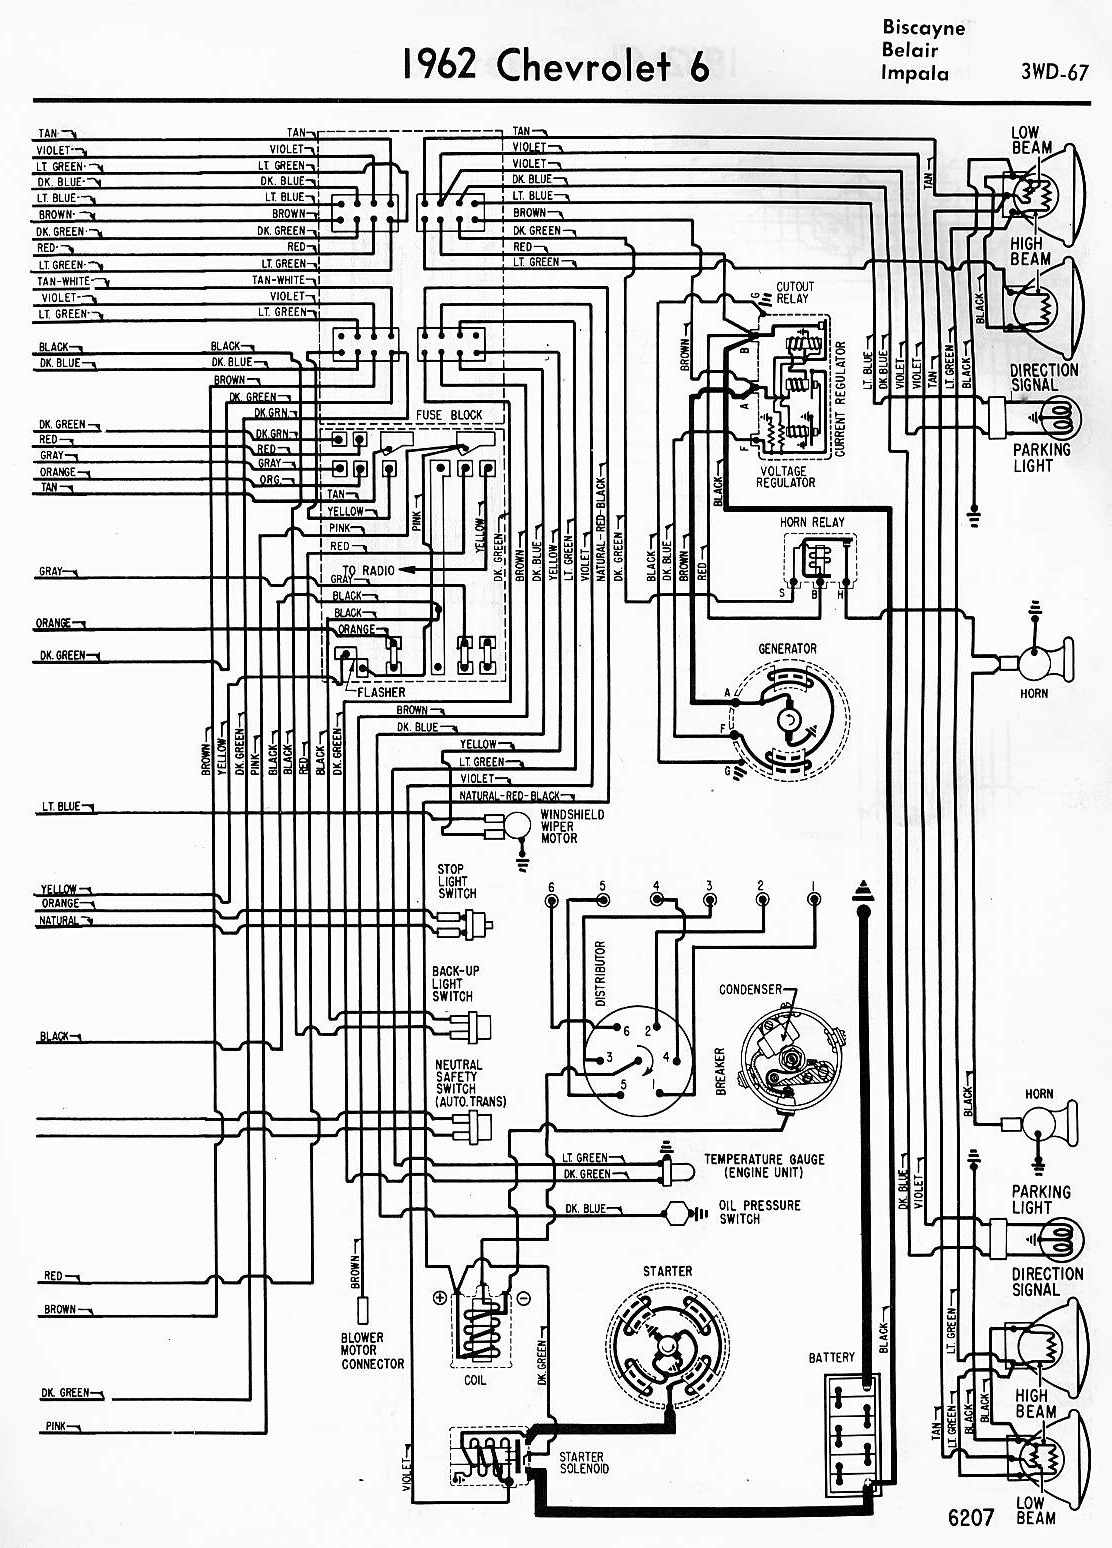 Electrical+Wiring+Diagram+Of+1964+Chevrolet+6 1964 impala wiring harness 1996 jeep cherokee wiring \u2022 wiring  at reclaimingppi.co